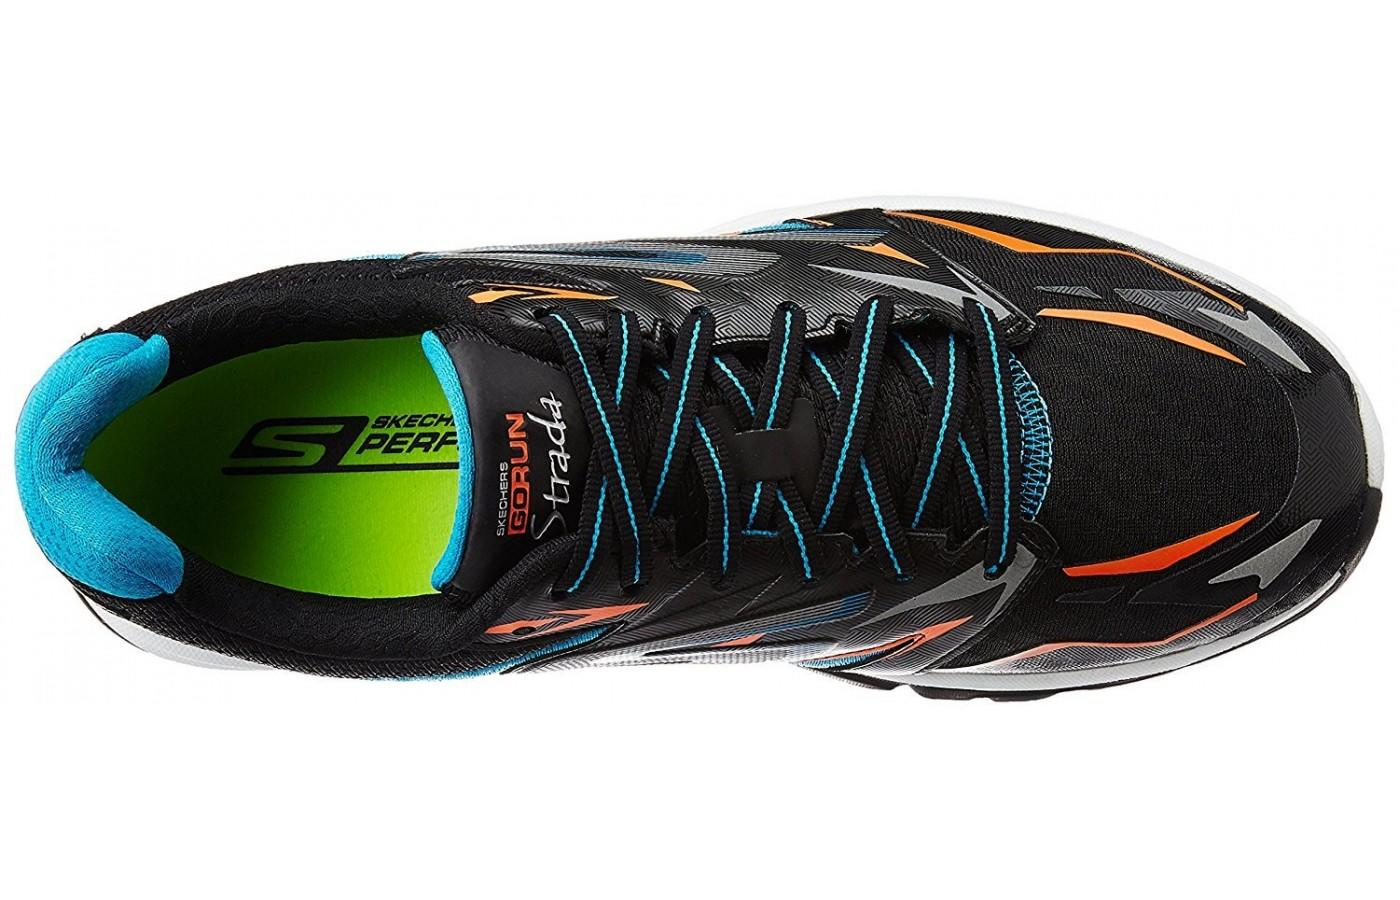 the Skechers GOrun Strada has a supportive and padded upper